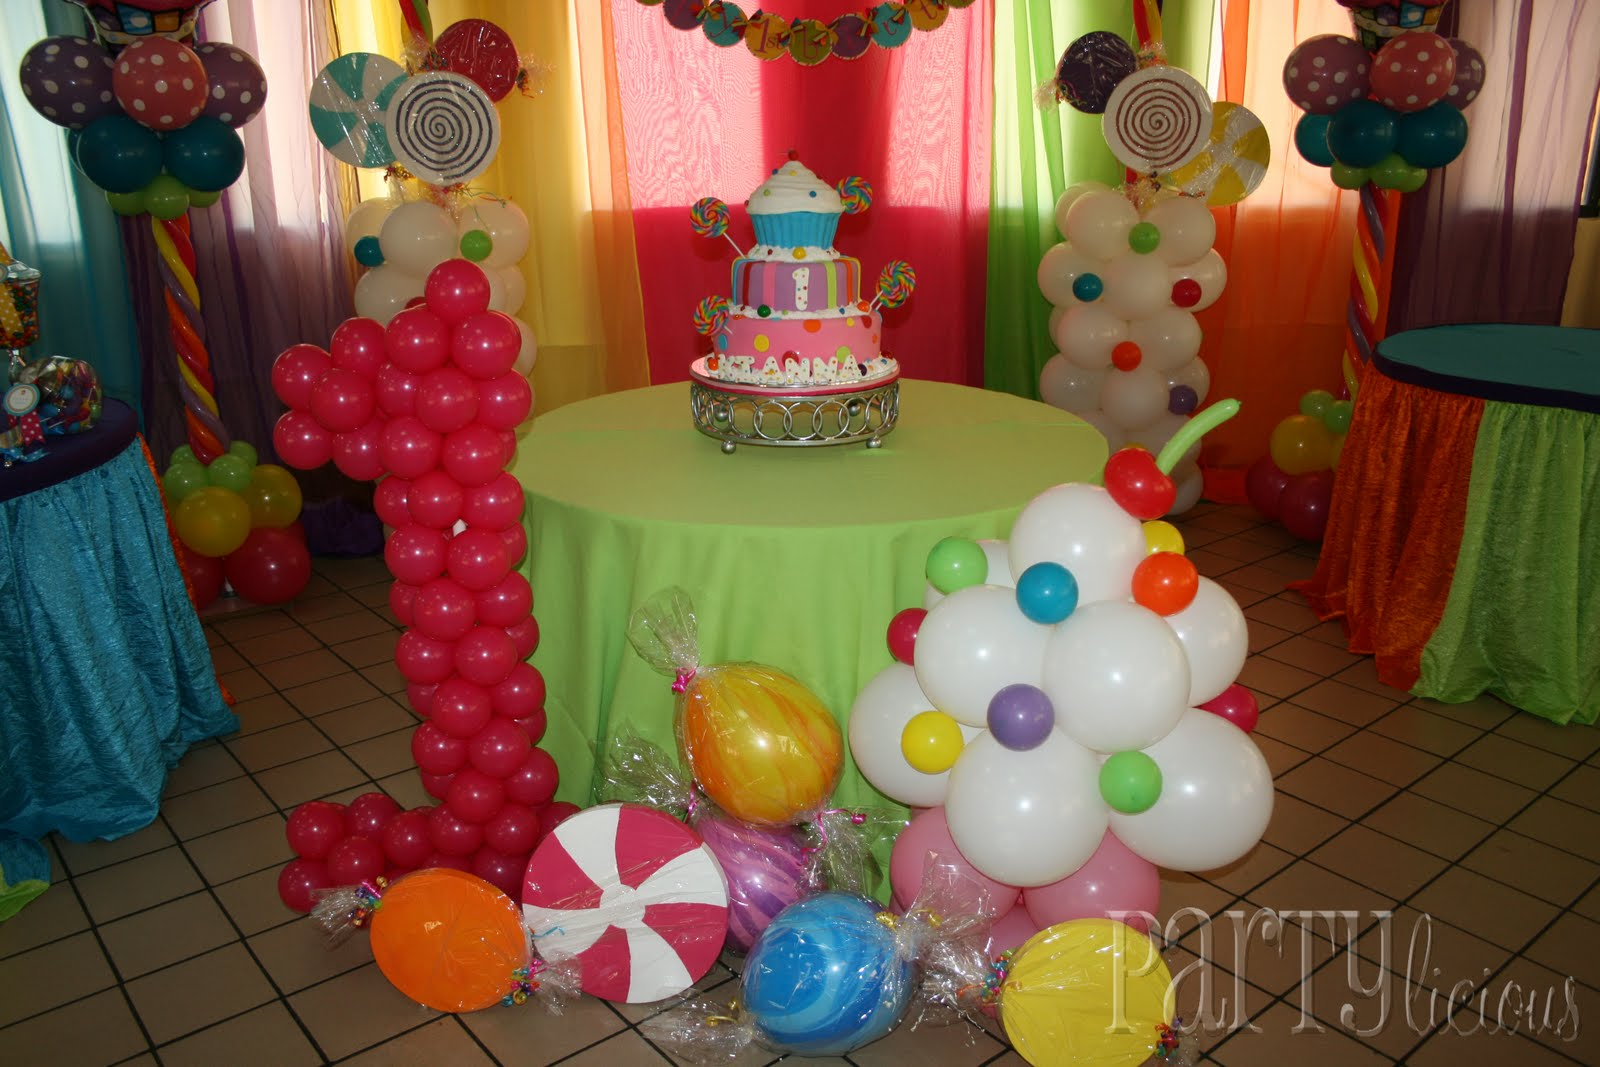 Partylicious events pr sweet 1st birthday candy cupcakes for 1st birthday balloon decoration images